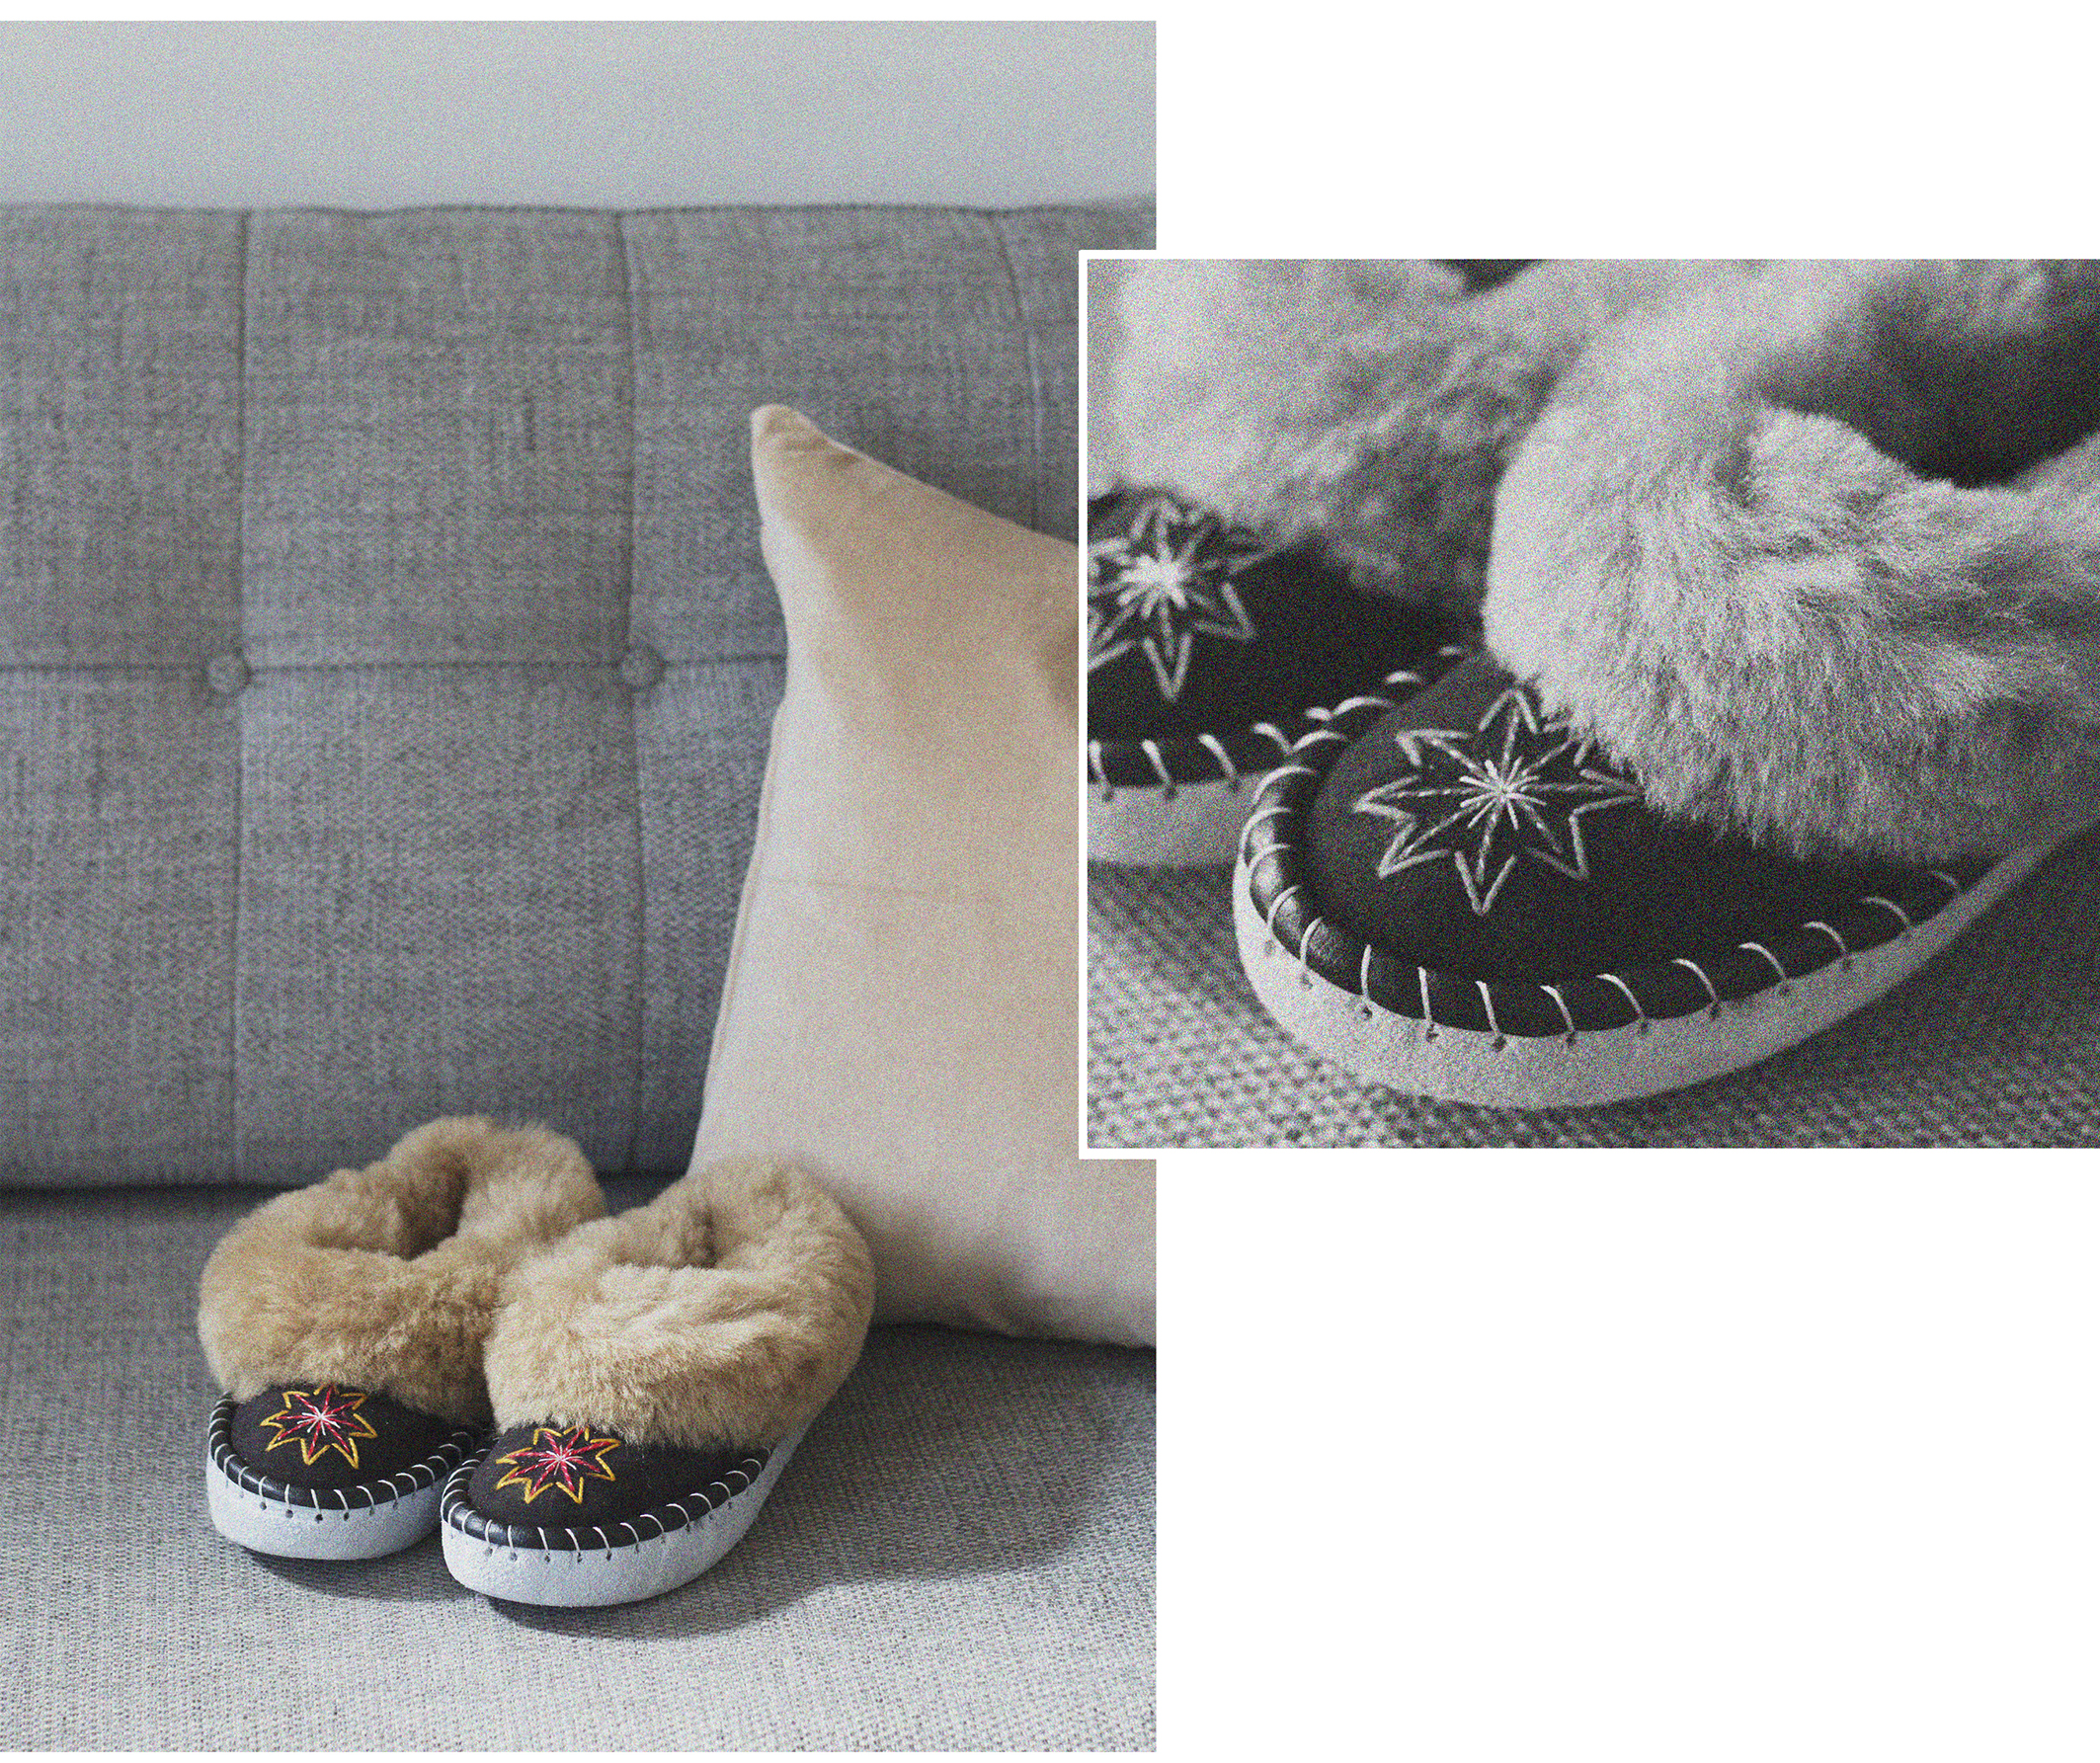 Handmade Sheepskin Moccasin Slippers, various styles sizes UK 3-8 available in-store